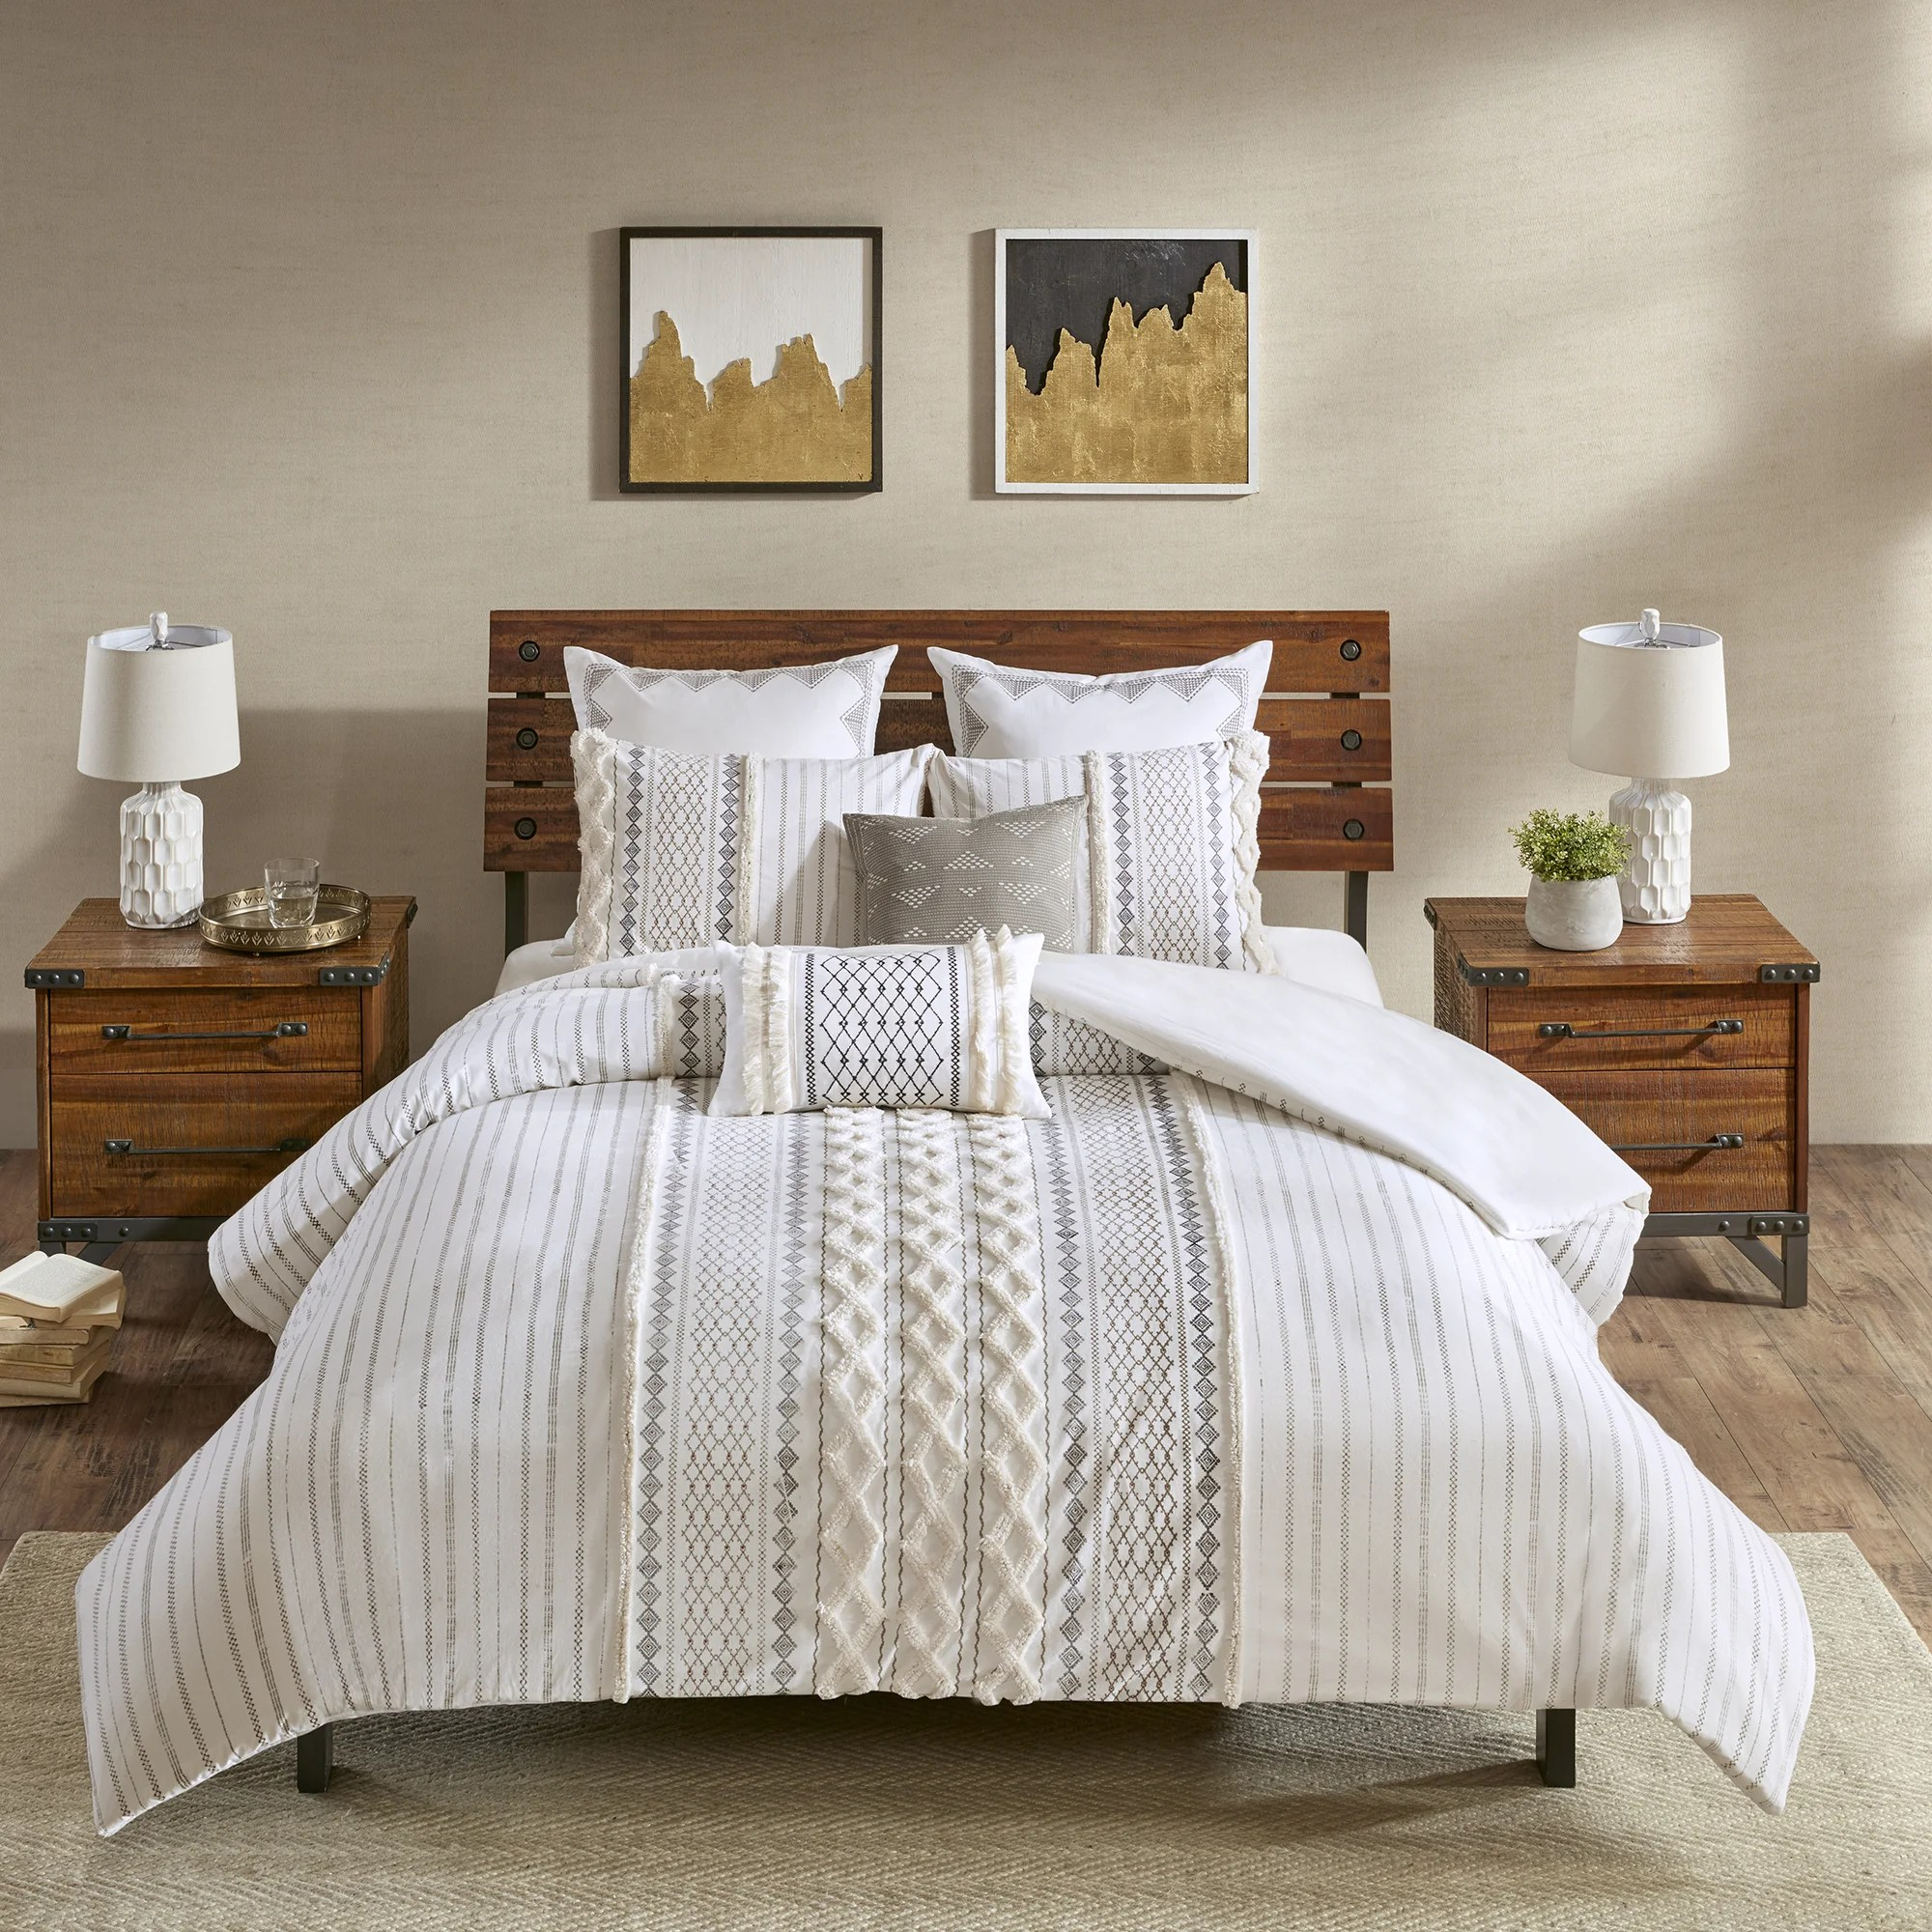 Quilt Cover King Ink Ivy Imani Cotton 3 Piece King Cal King Size Duvet Cover Set In Ivory As Is Item